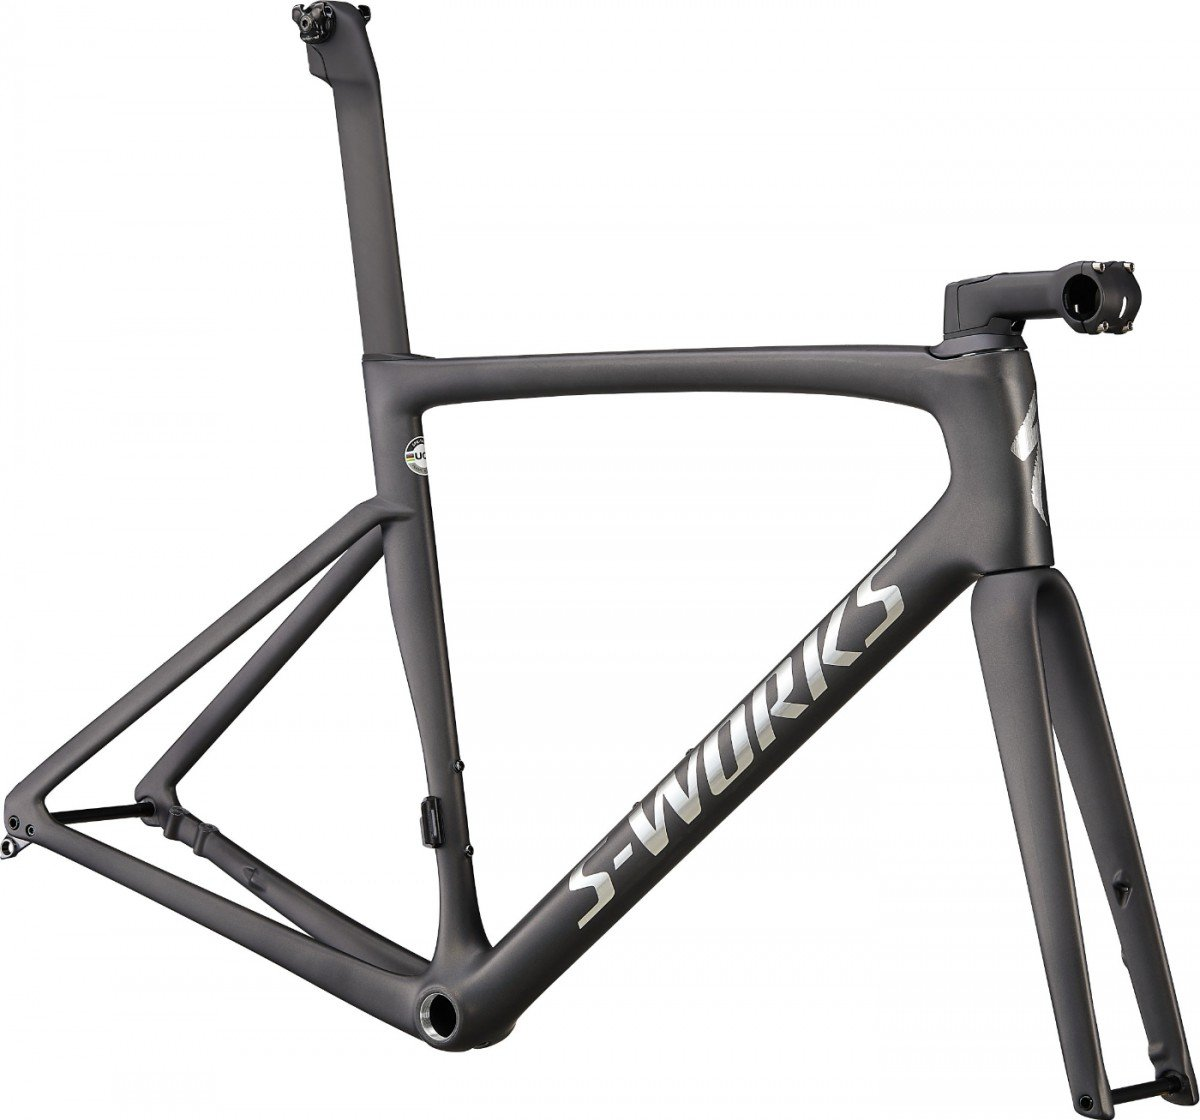 EAN-code: 70622-0058 Product: SPECIALIZED S-WORKS TARMAC SL7 FRAMESET, SATIN CARBON / SPECTRAFLAIR TINT / GLOSS BRUSHED C (Part-No: 70622-0058) at cycleXperience.nl